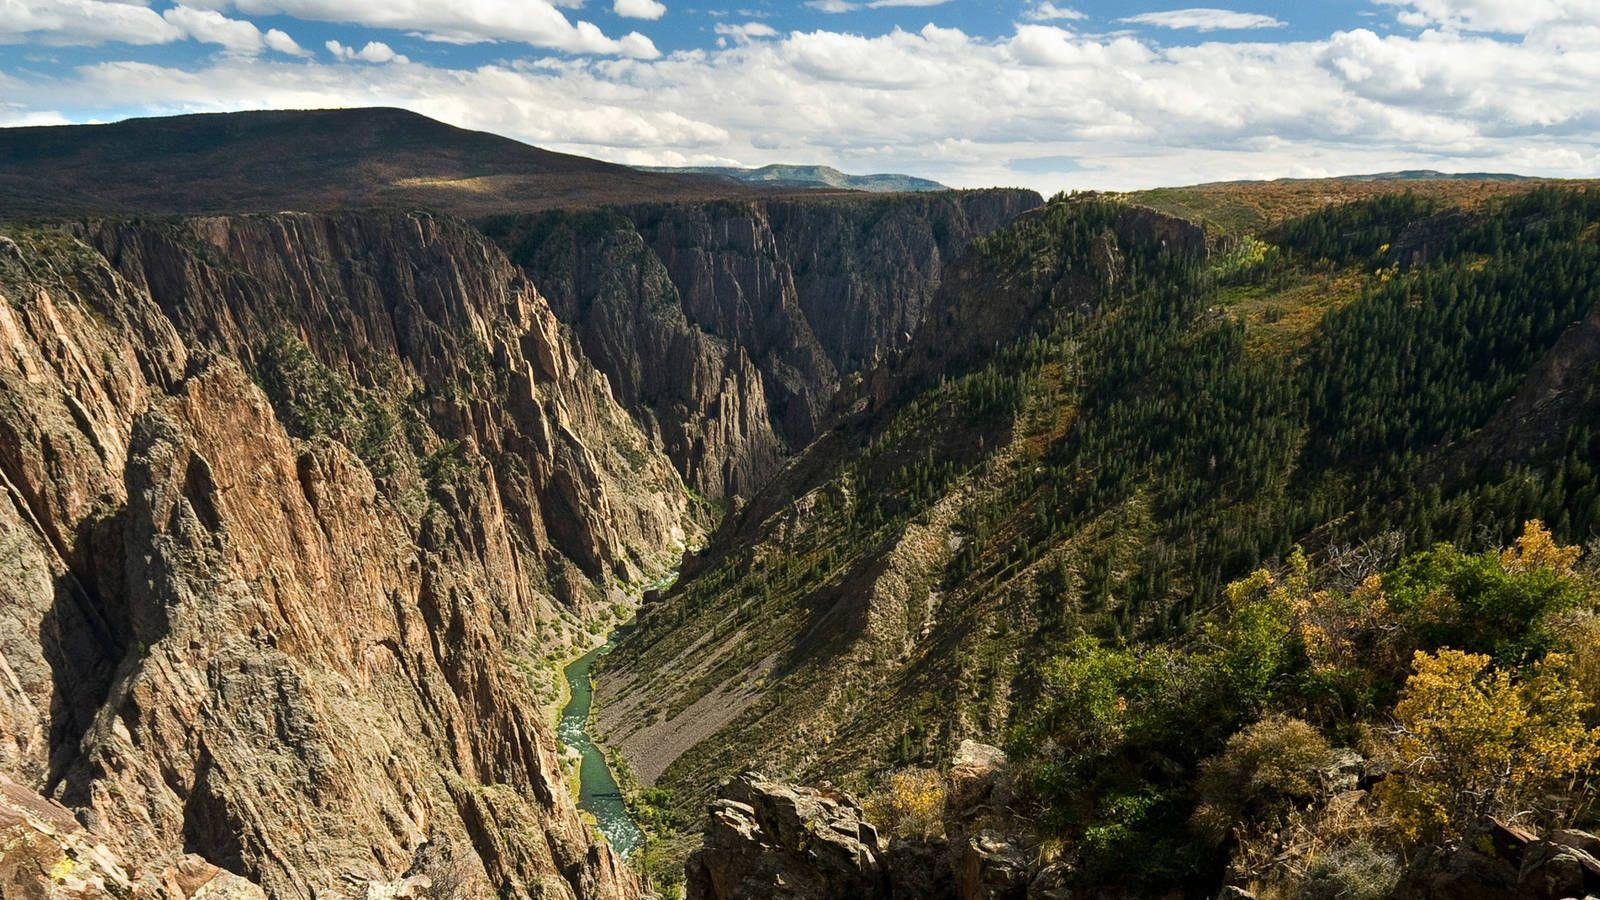 Black Canyon Of The Gunnison · National Parks Conservation Association